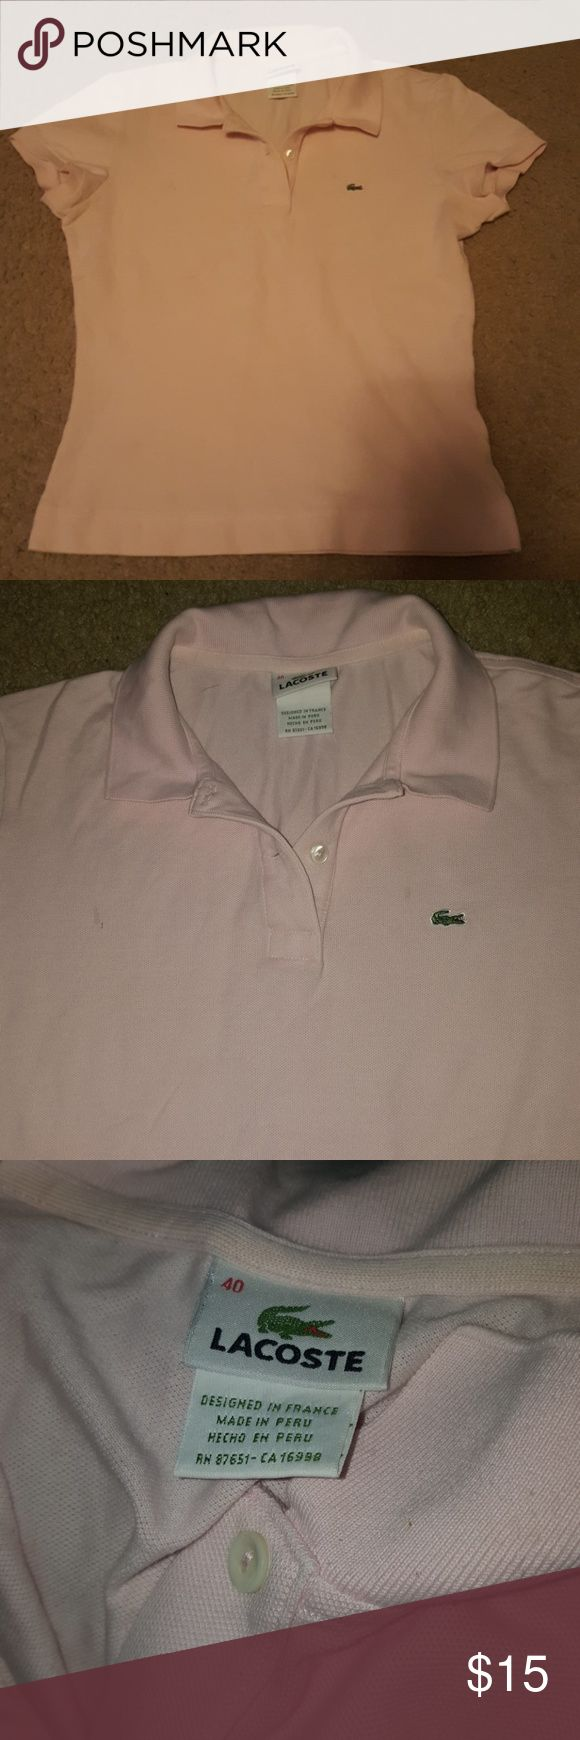 💜Lacoste pink polo junior💜 Lacoste pink polo junior size 40 small. Smoke free home good condition. Lacoste Tops Blouses